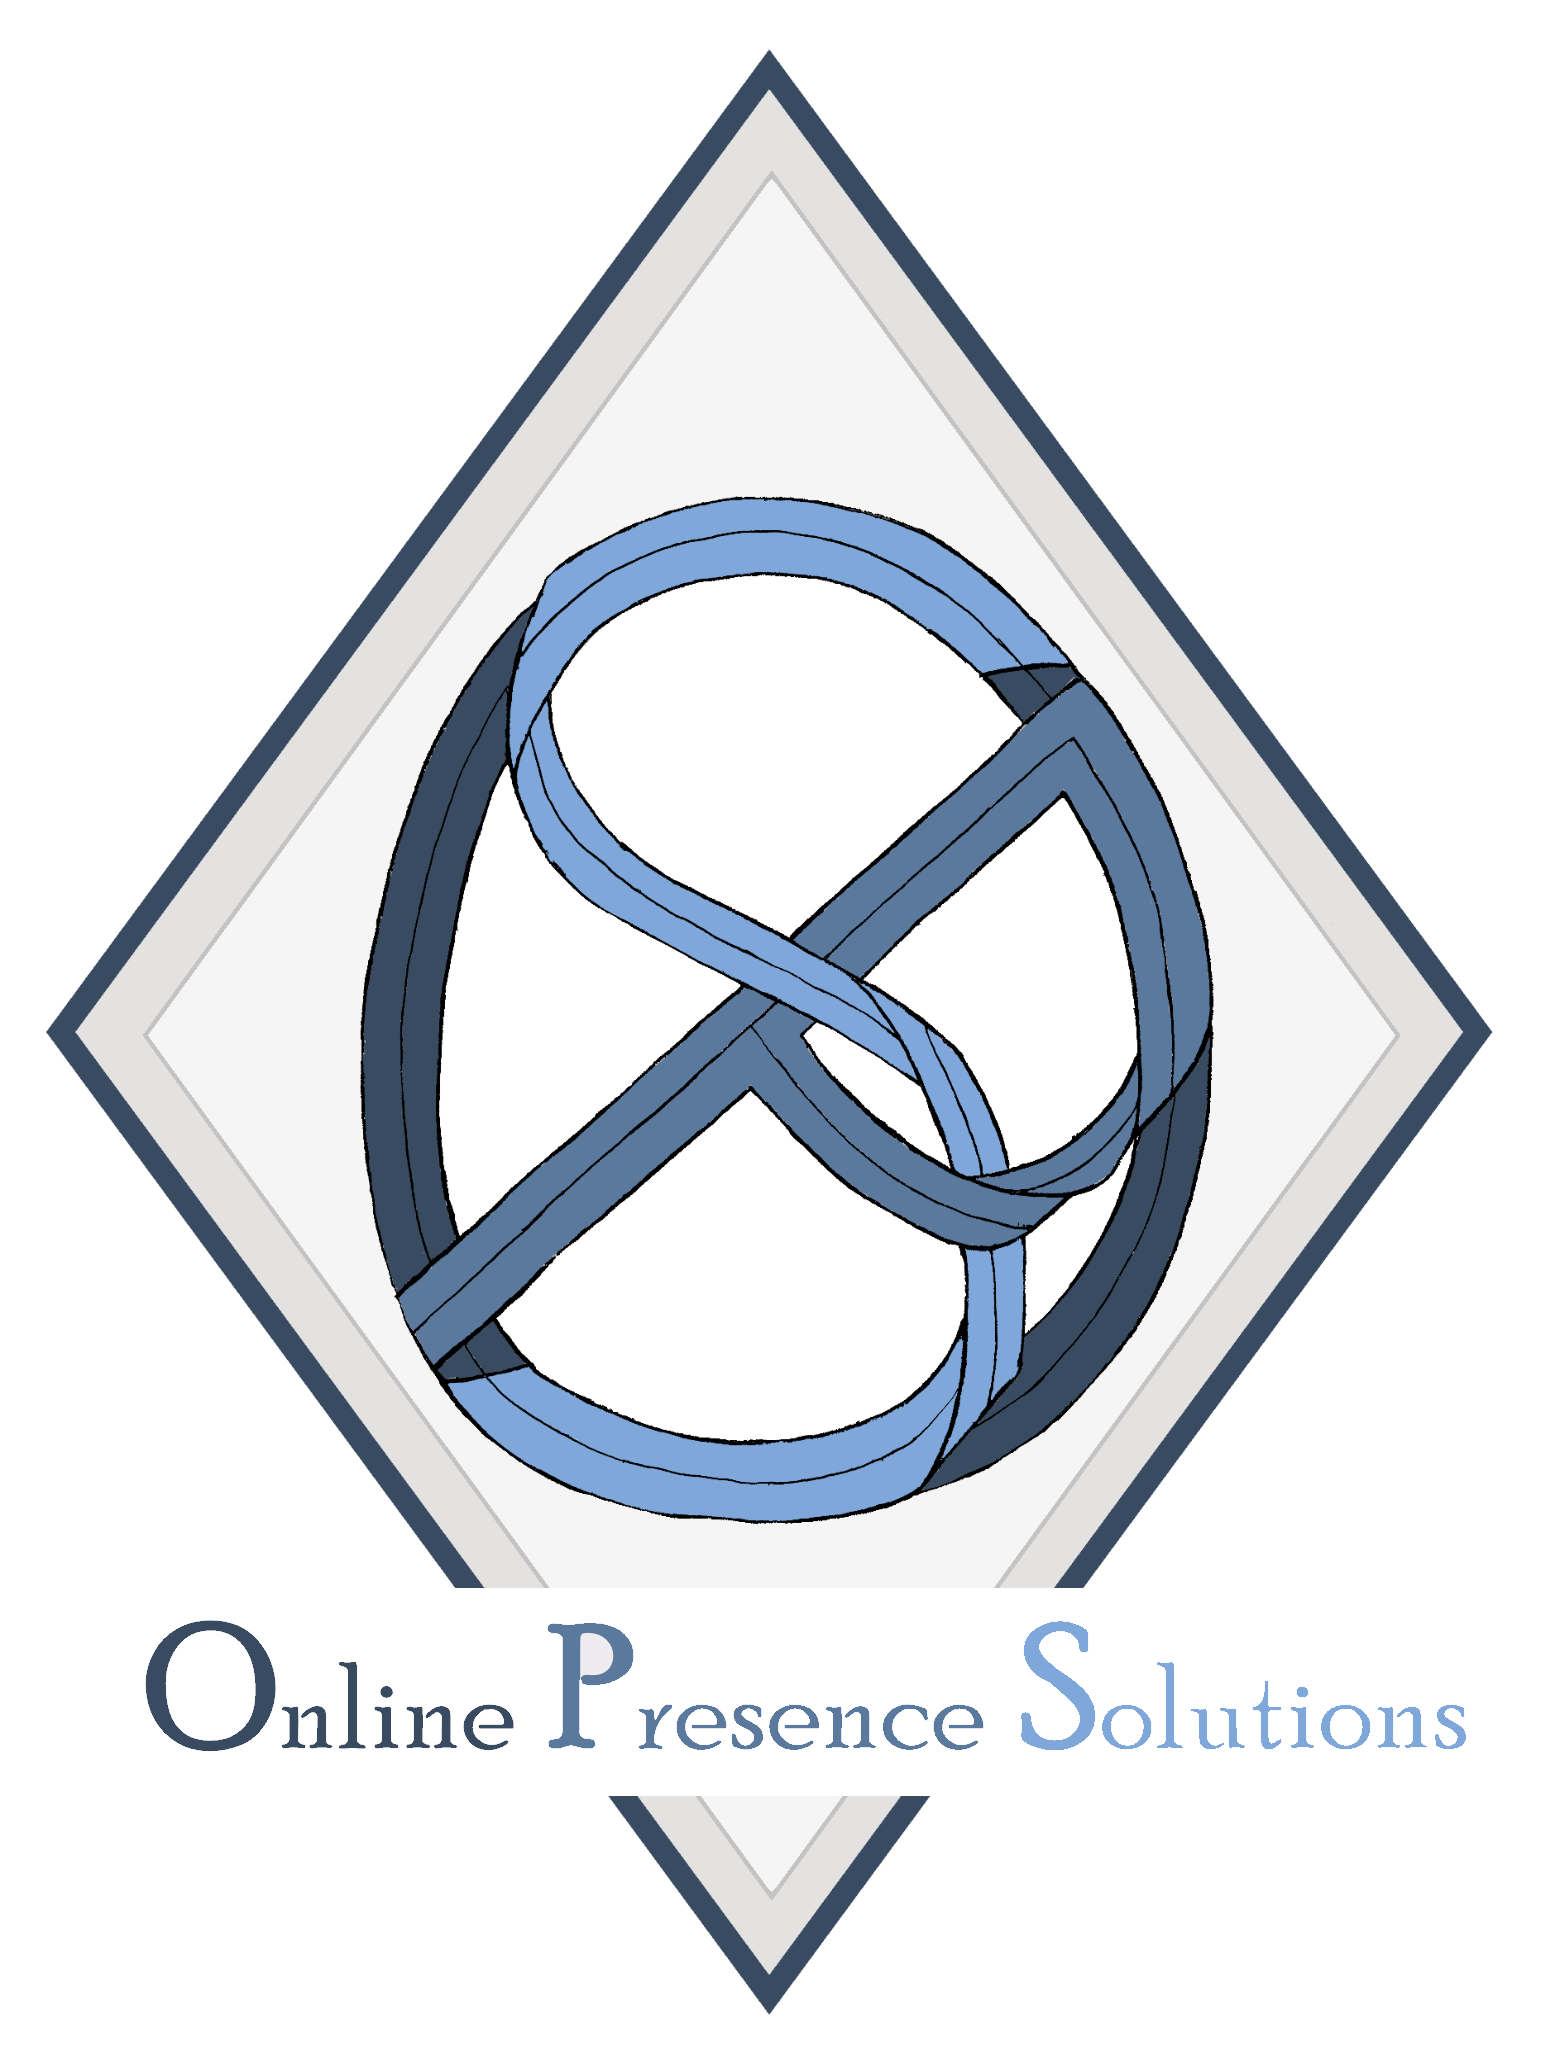 Online Presence Solutions